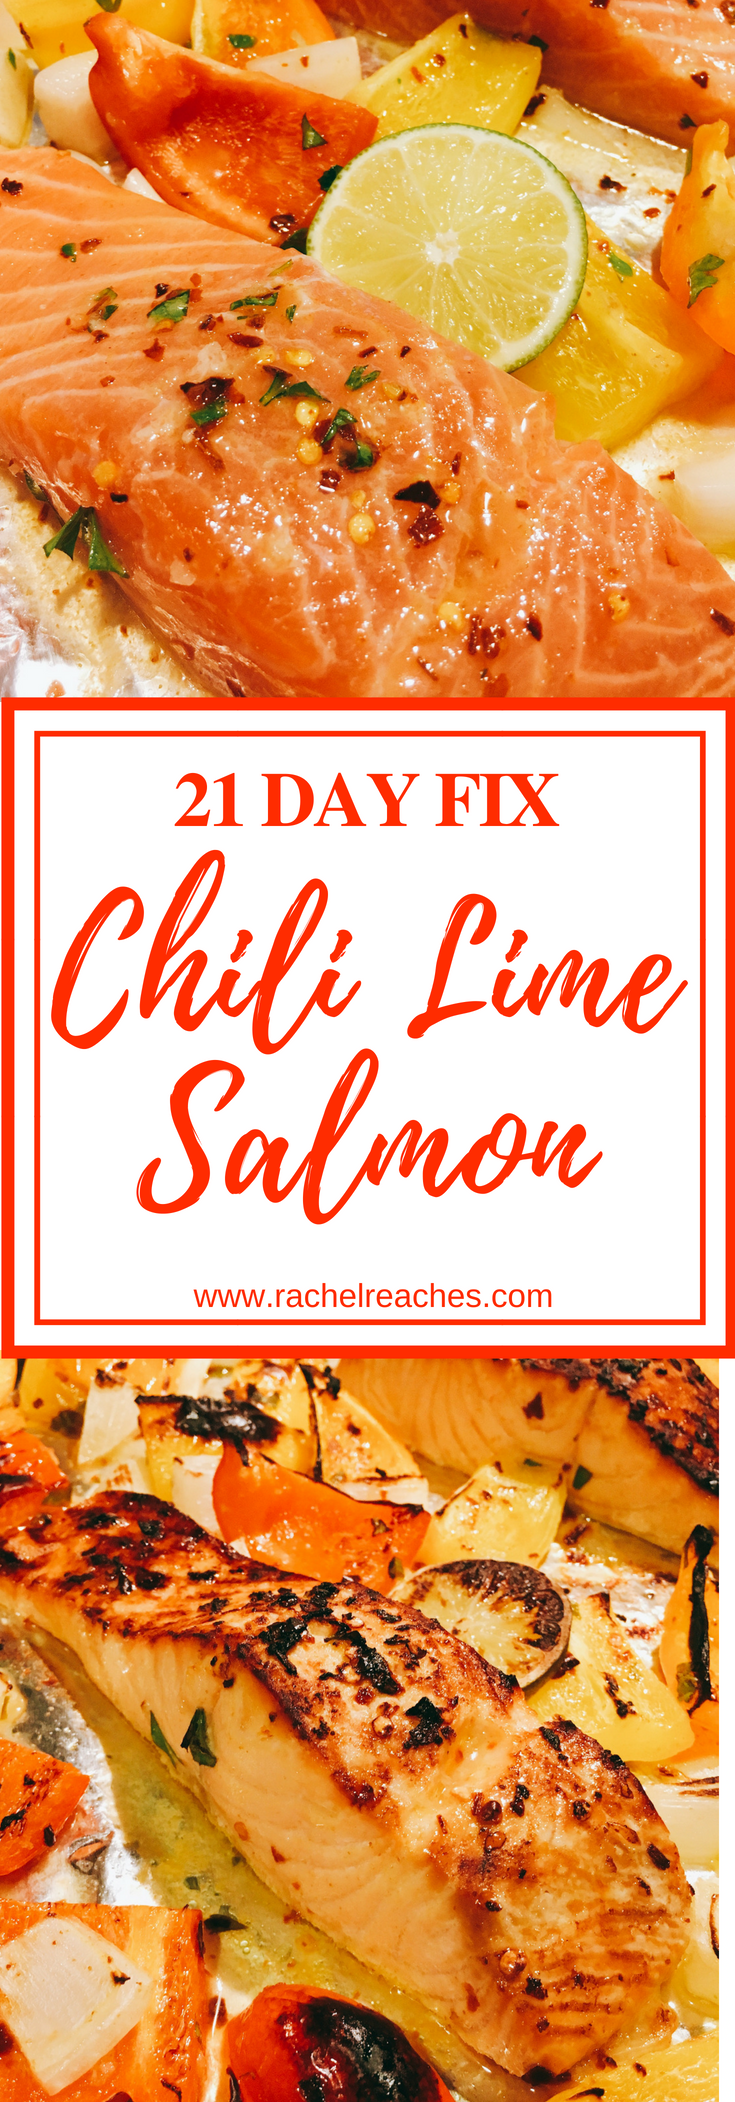 Chili Lime Salmon Pin - 21 Day Fix.png